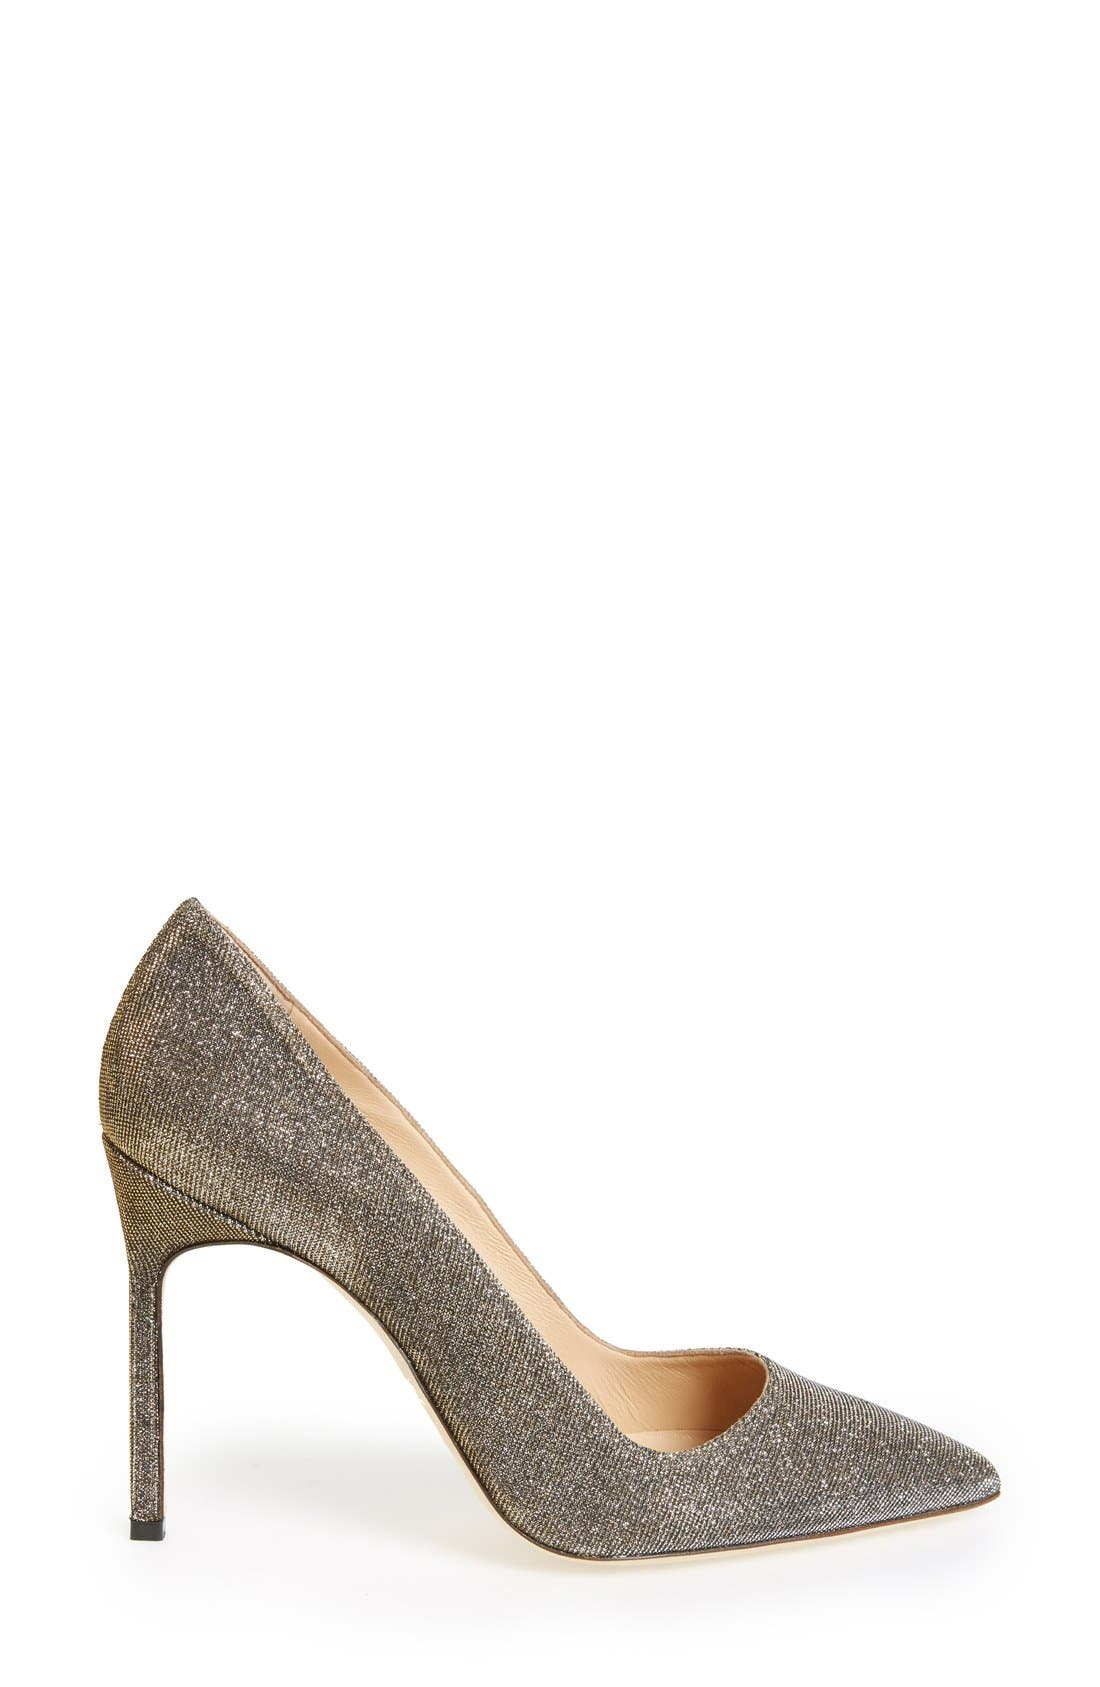 BB Pointy Toe Pump,                             Alternate thumbnail 43, color,